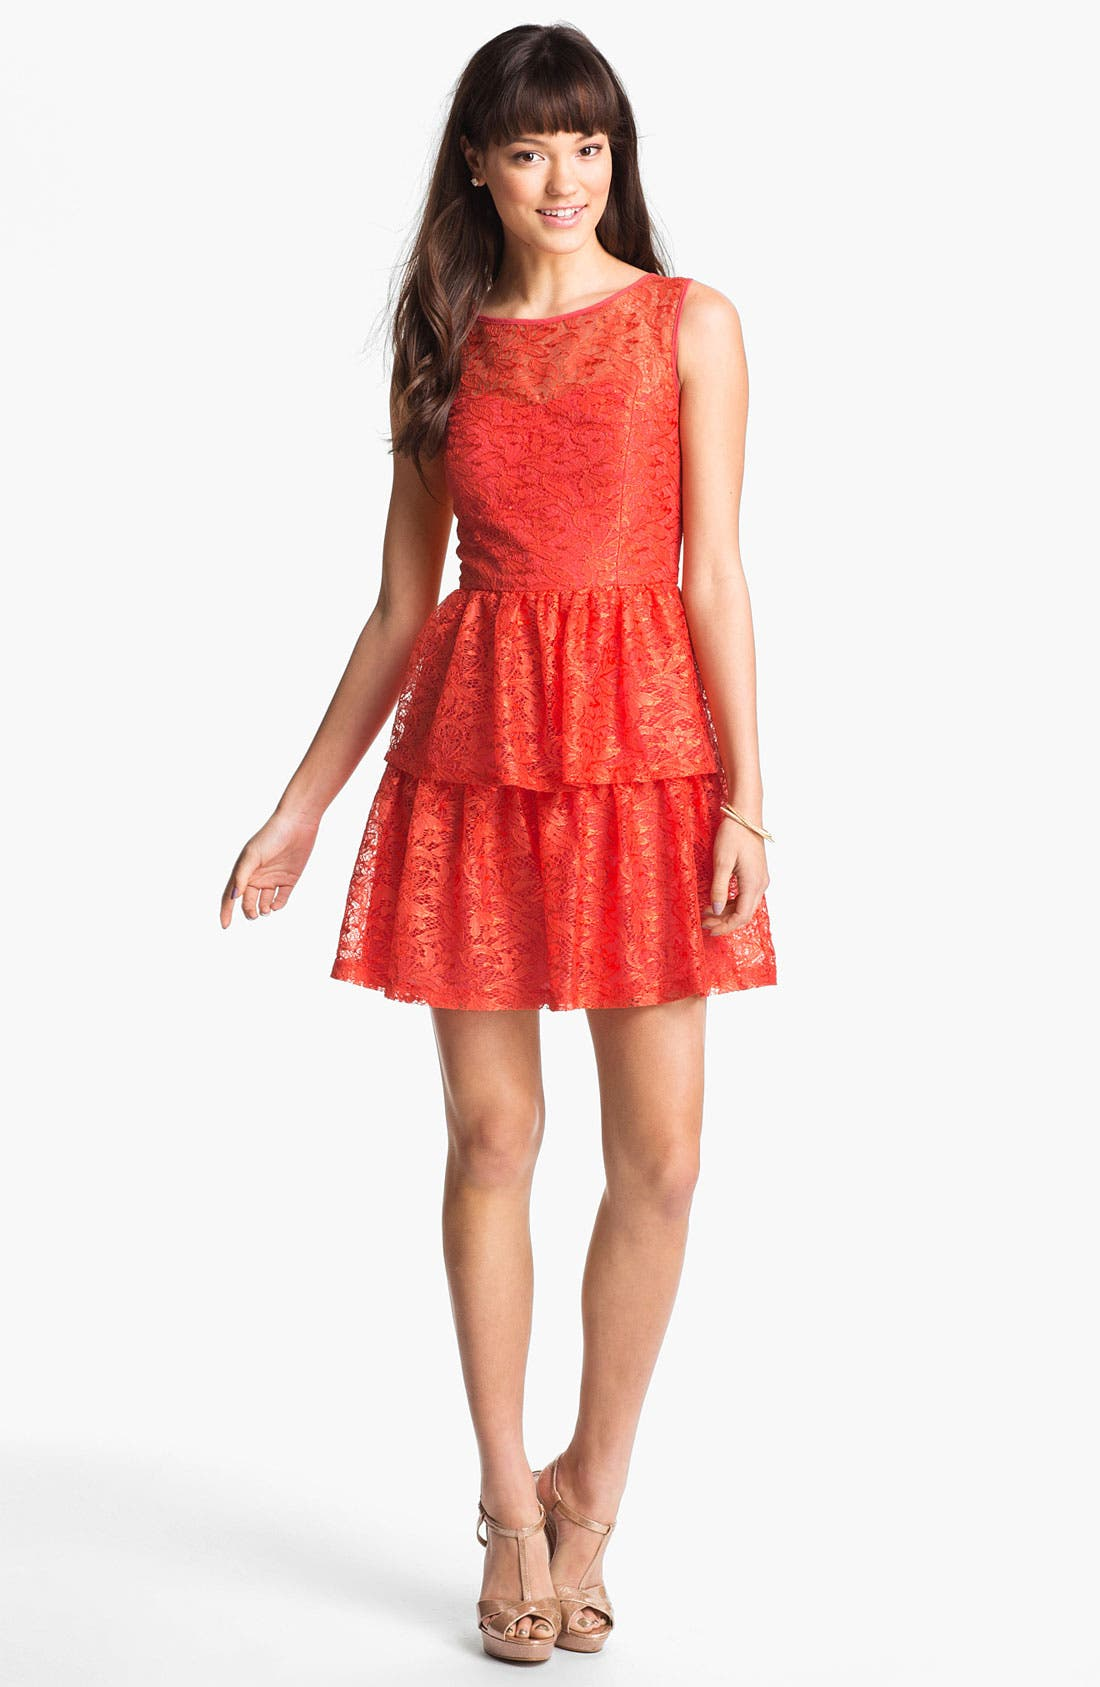 Alternate Image 1 Selected - Max & Cleo Tiered Lace Fit & Flare Dress